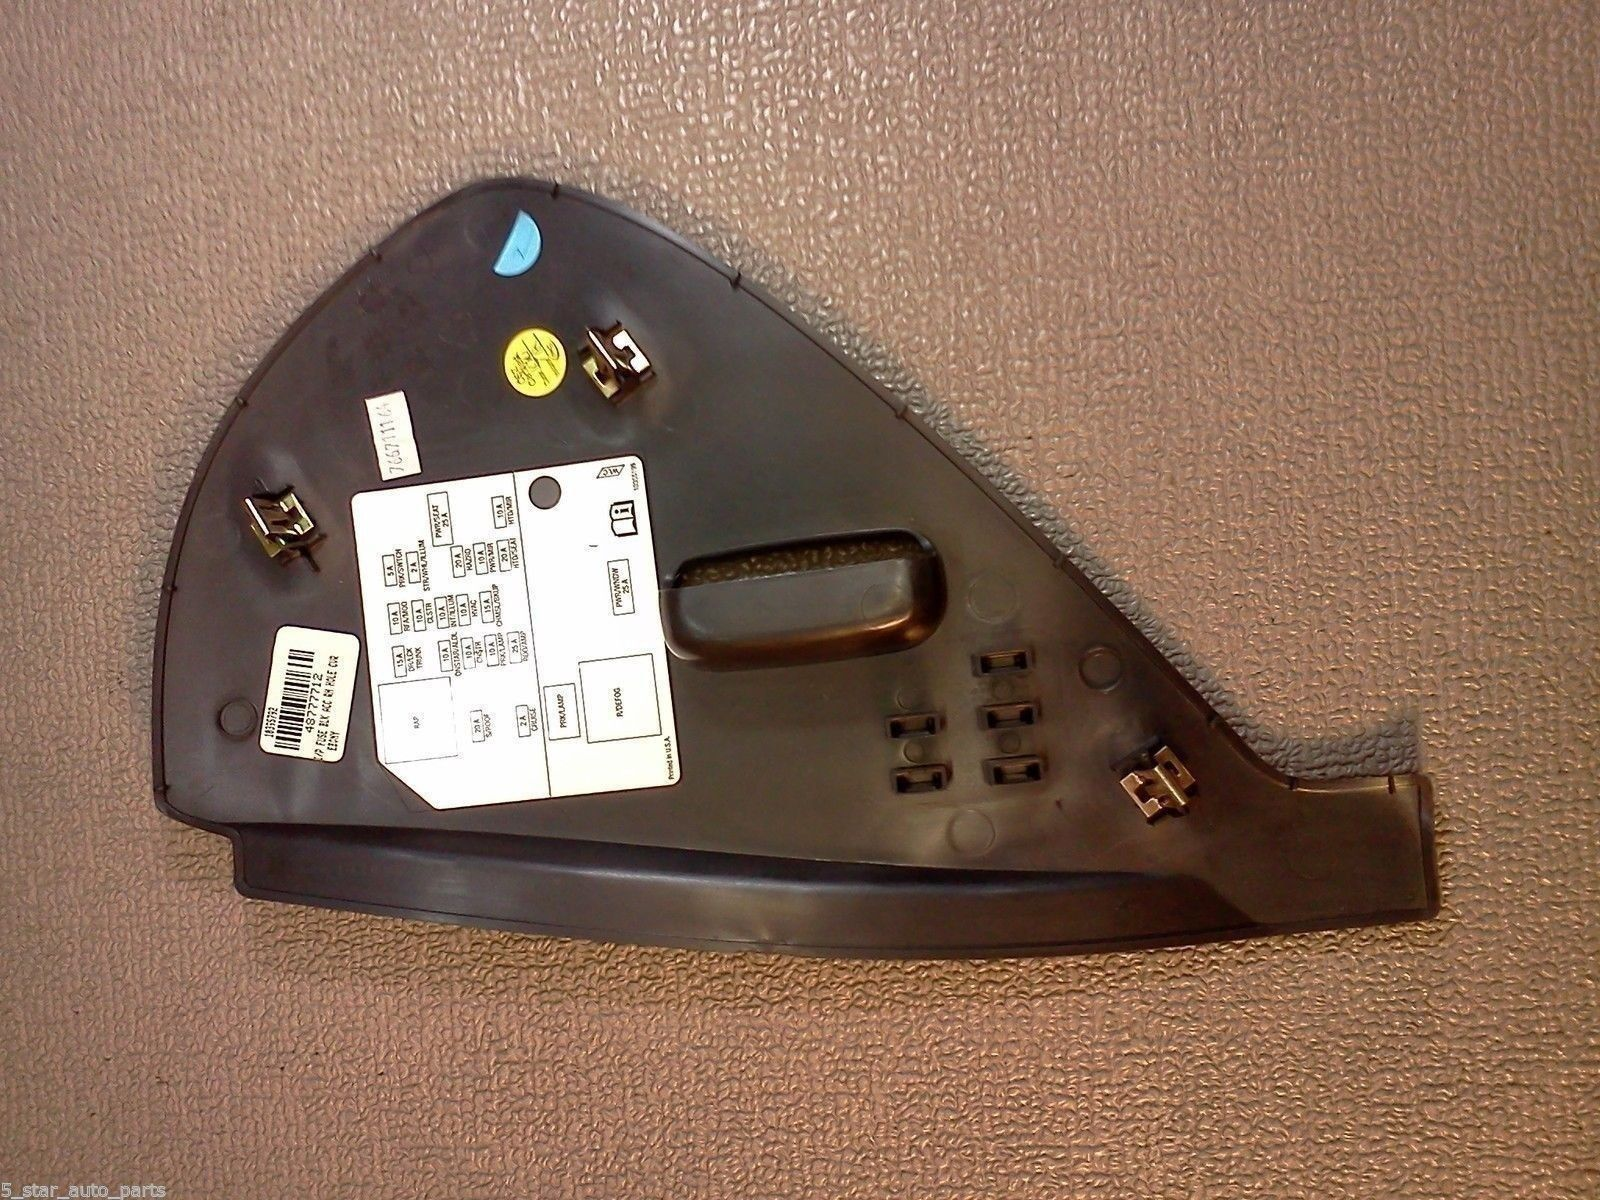 Buick Lucerne Fuse Box Dash Cover 2006 2007 And 14 Similar Items 06 2008 2009 2010 2011 Color Black